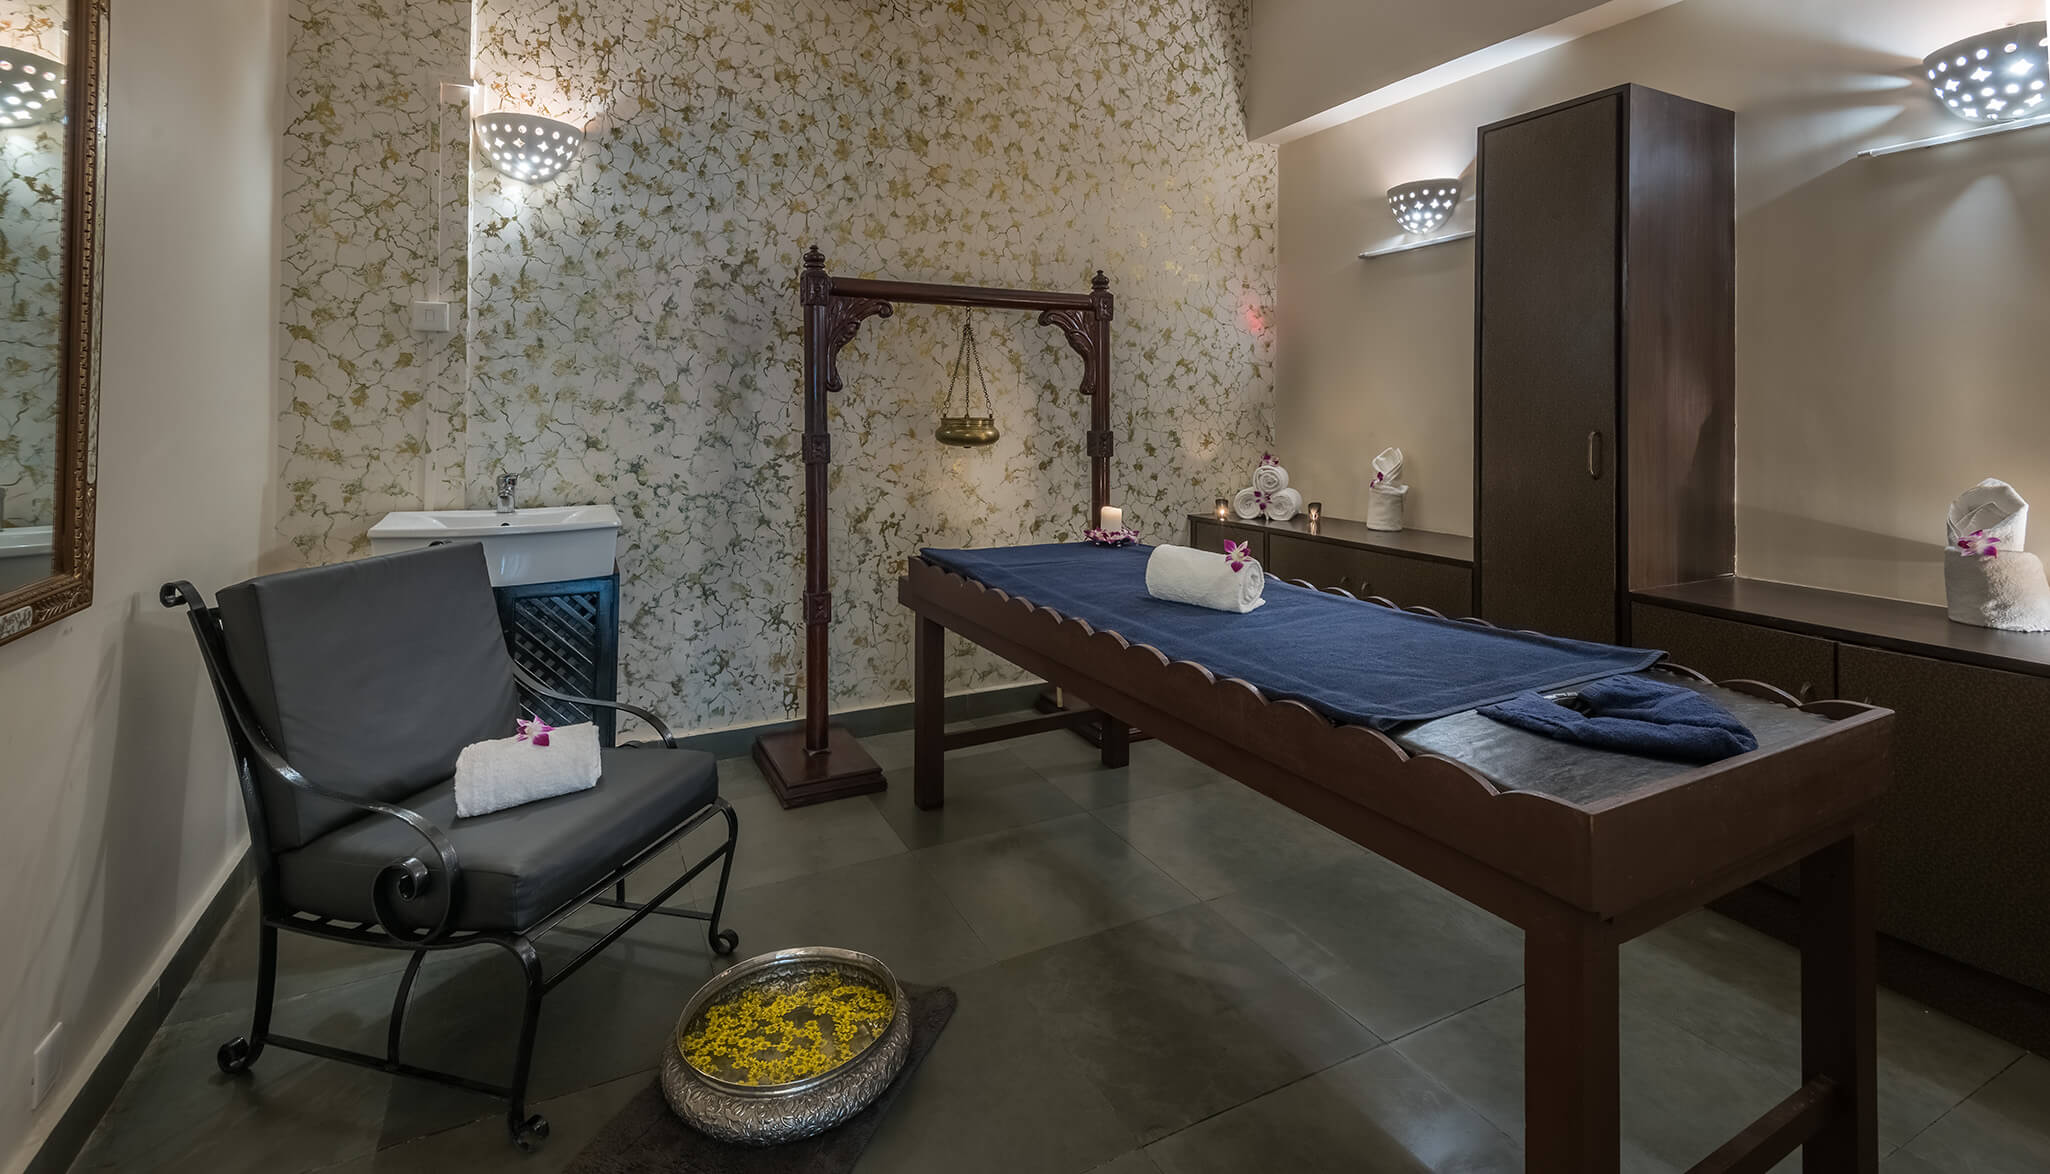 luxury hotel of Karma Royal Palms Karma Spa and body treatment